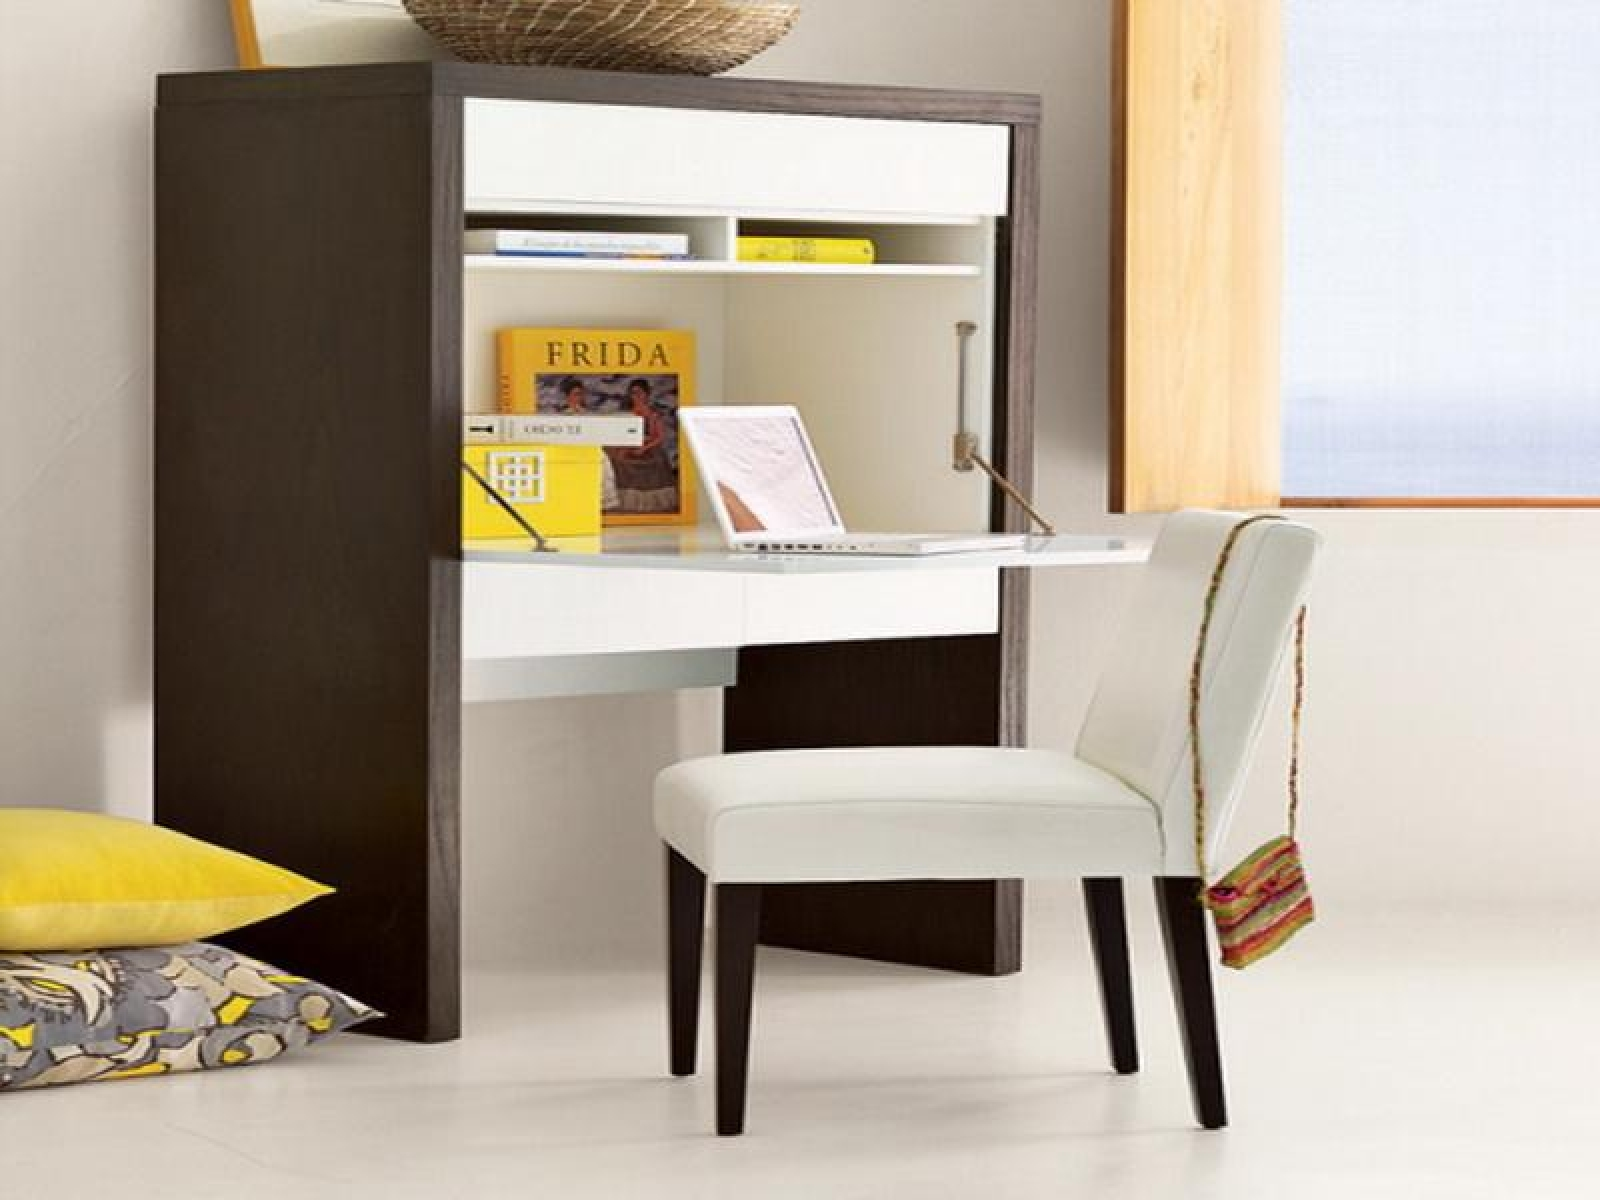 Best selections of ikea desks for small spaces homesfeed - Desk for small spaces ikea ...